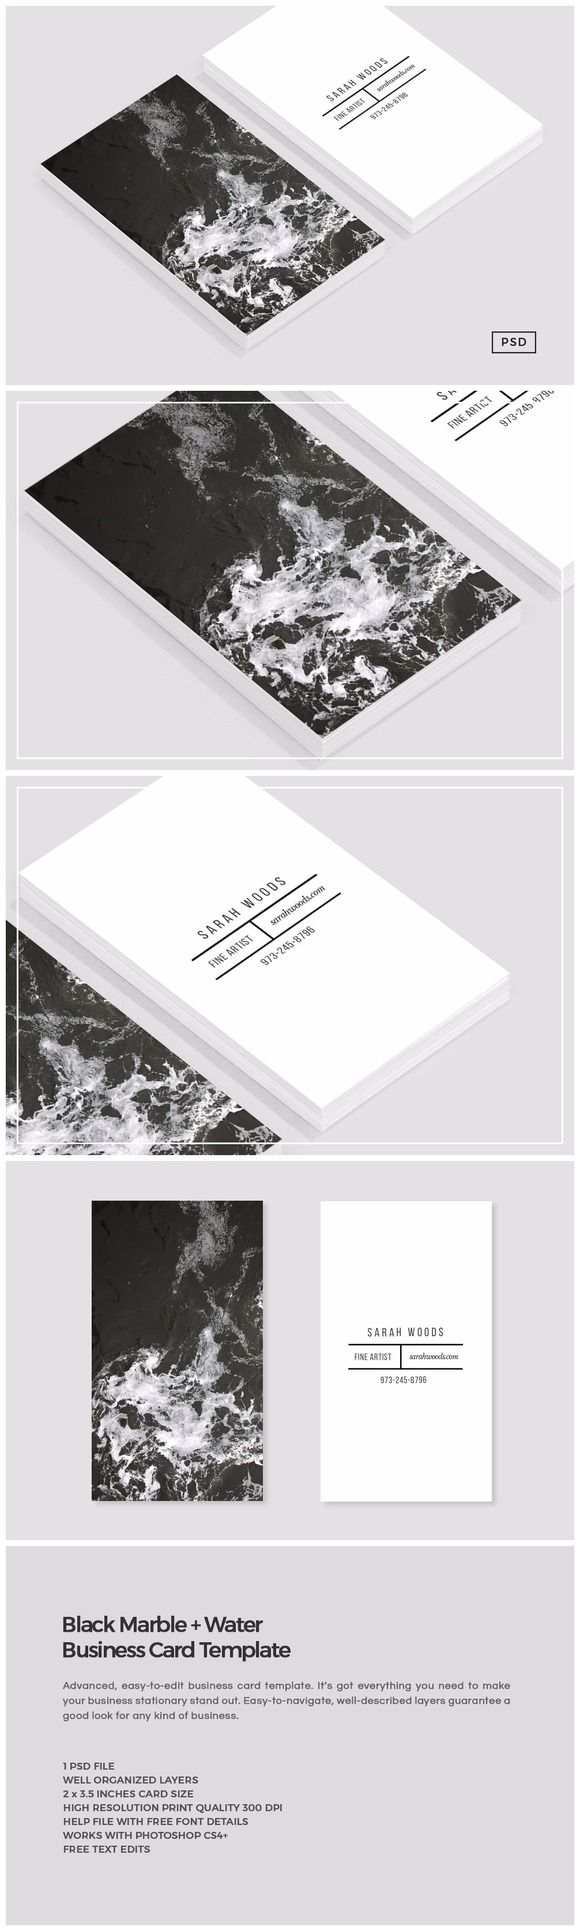 Best 25 business card design ideas on pinterest business cards black marble business card template by design co on creativemarket reheart Gallery